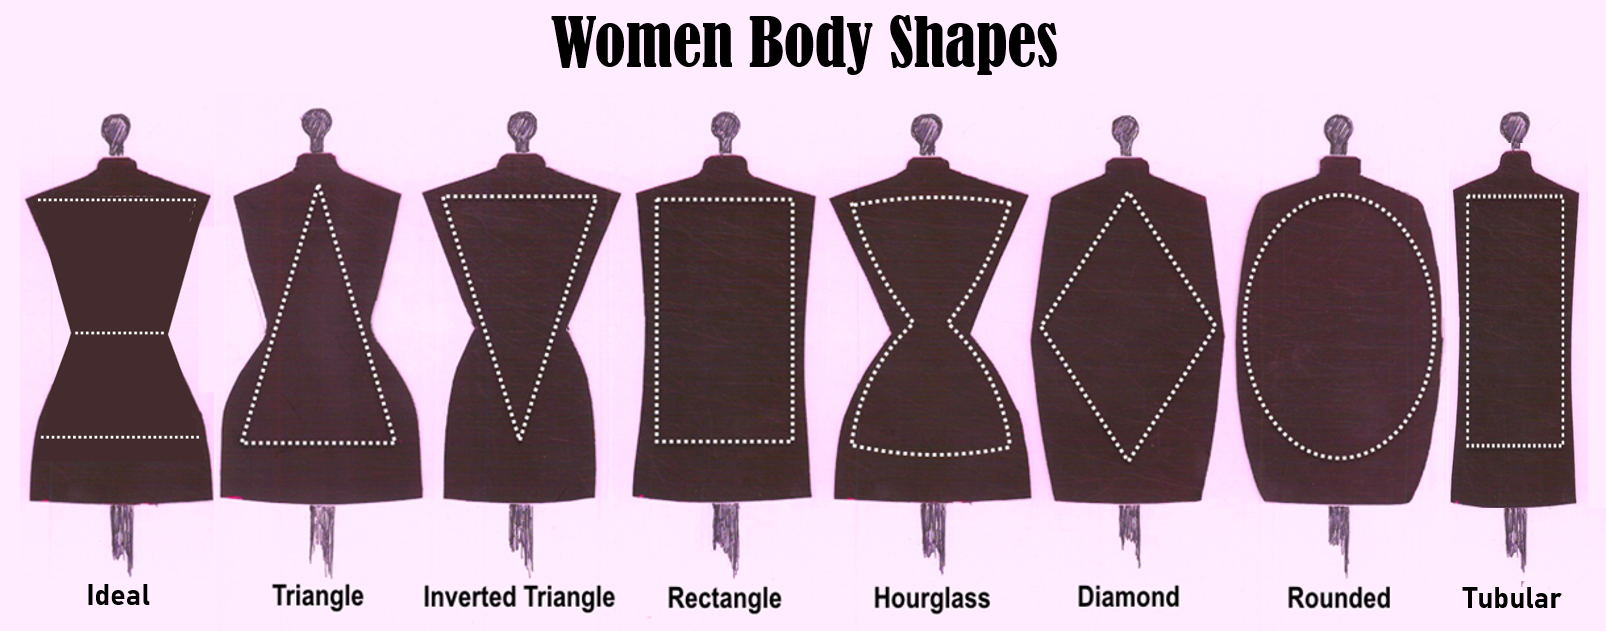 Different Body Shapes for Women-Answering, 'What shape is my body?'